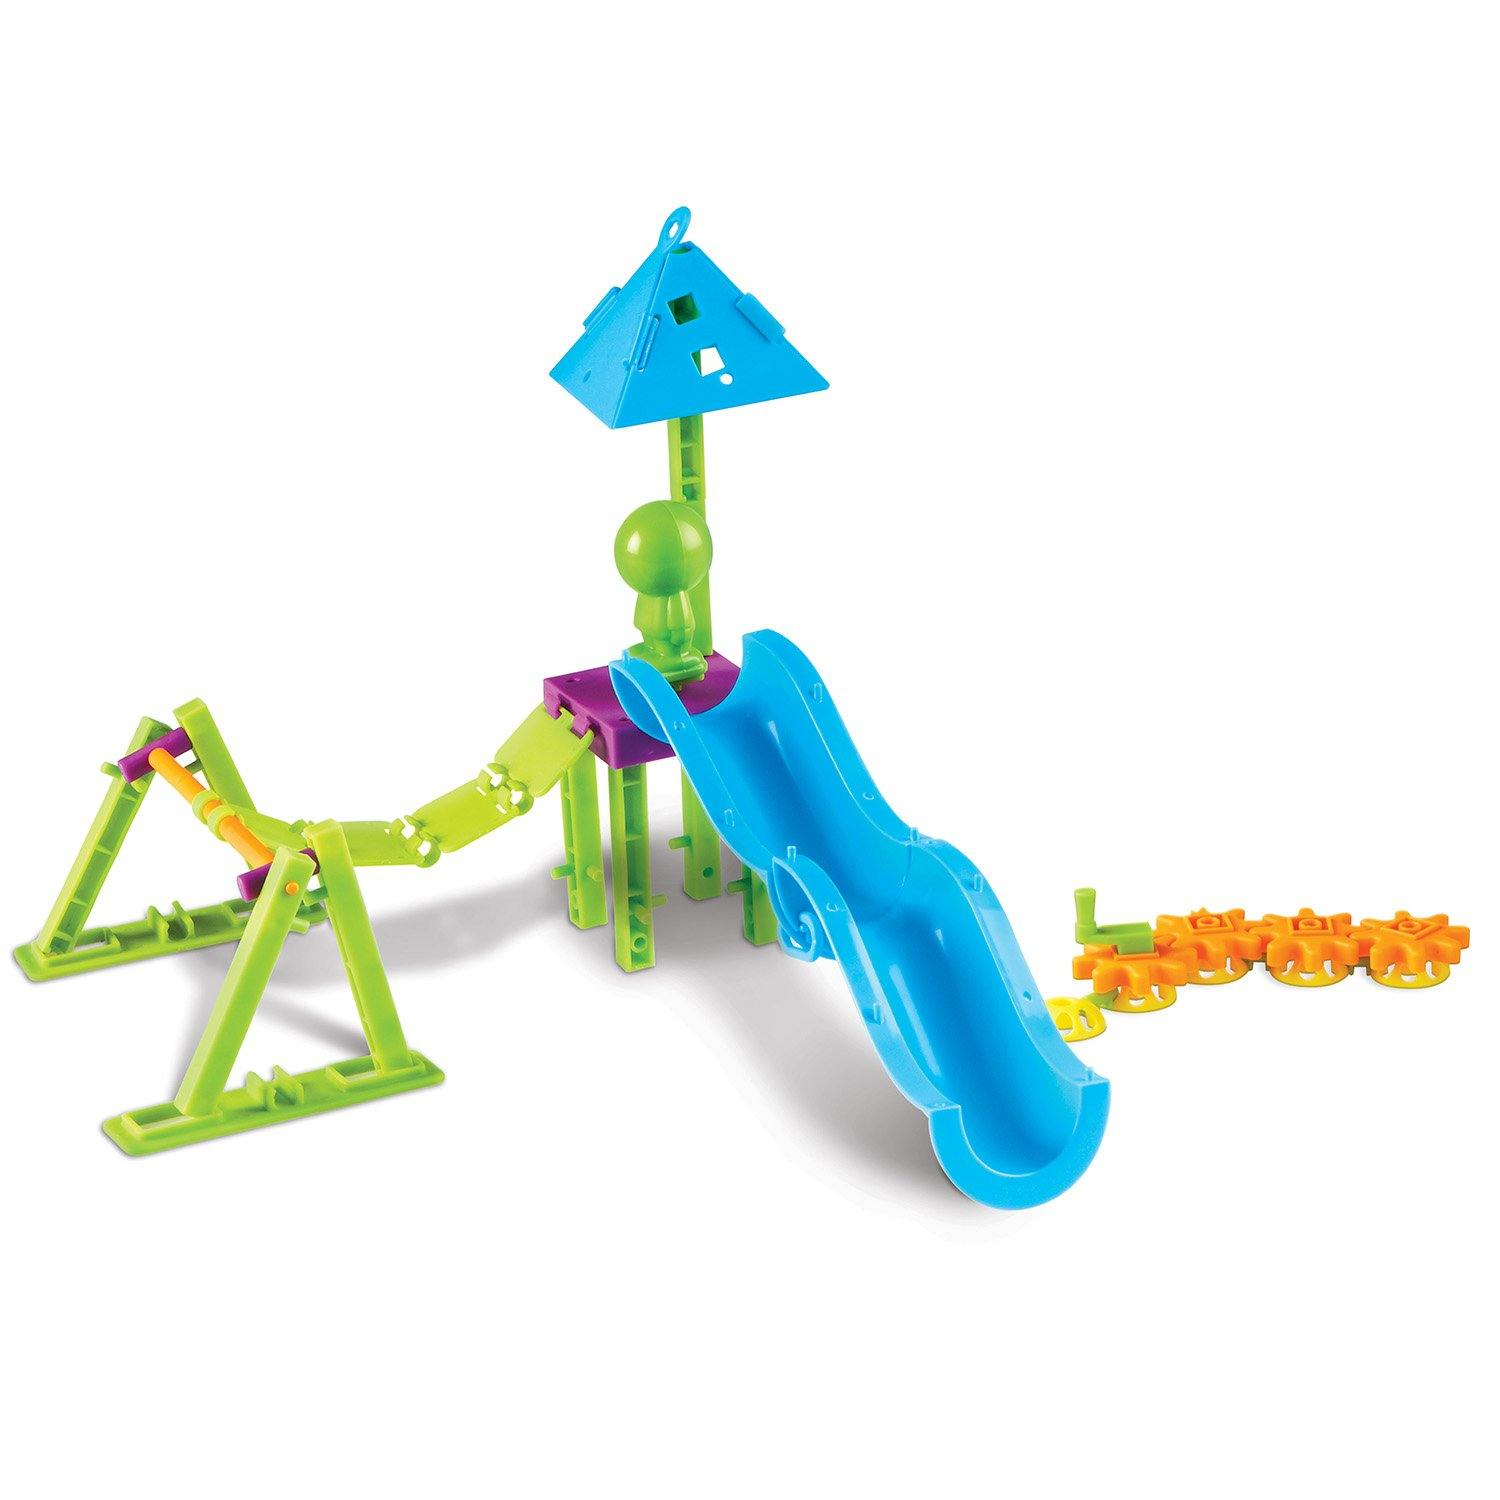 Toy slide set